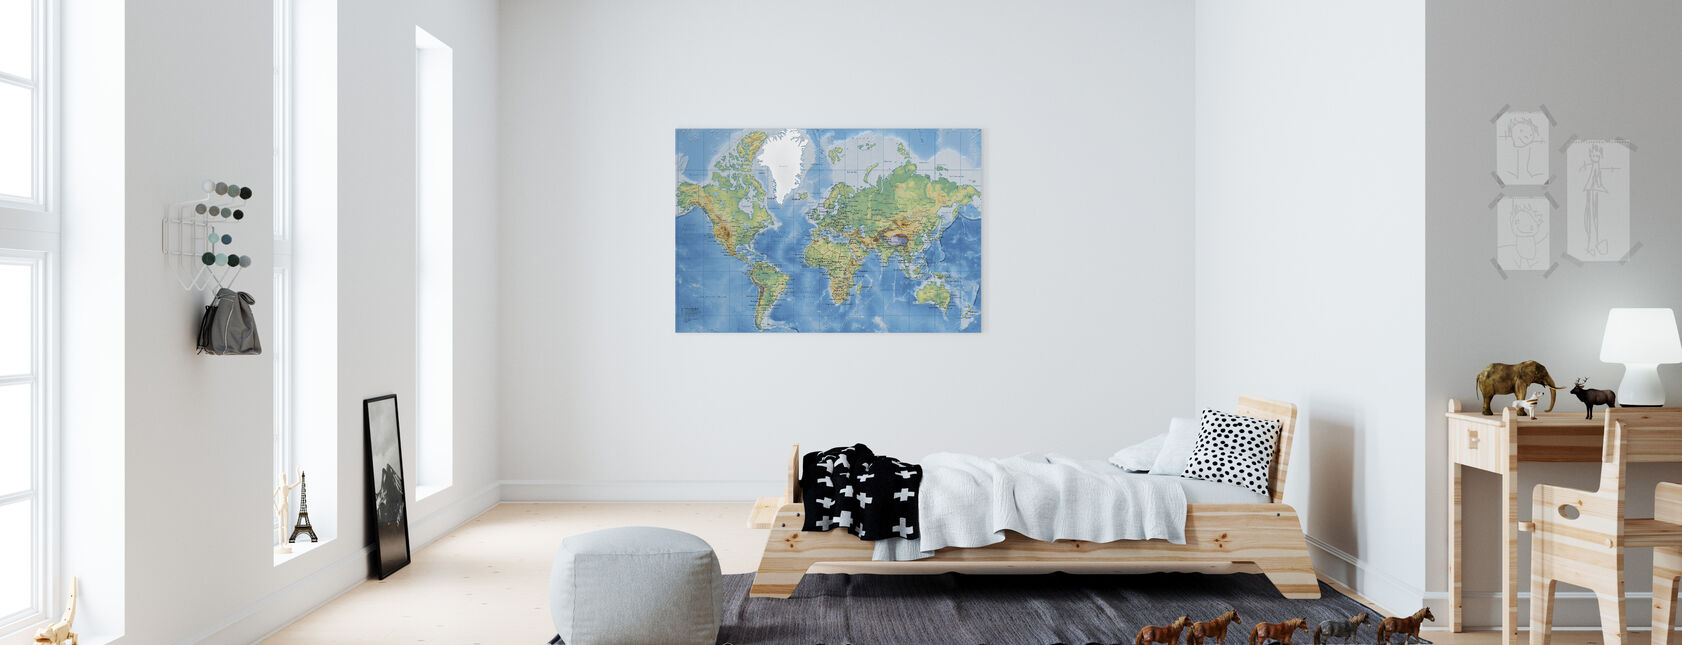 World Map Detailed - Canvas print - Kids Room